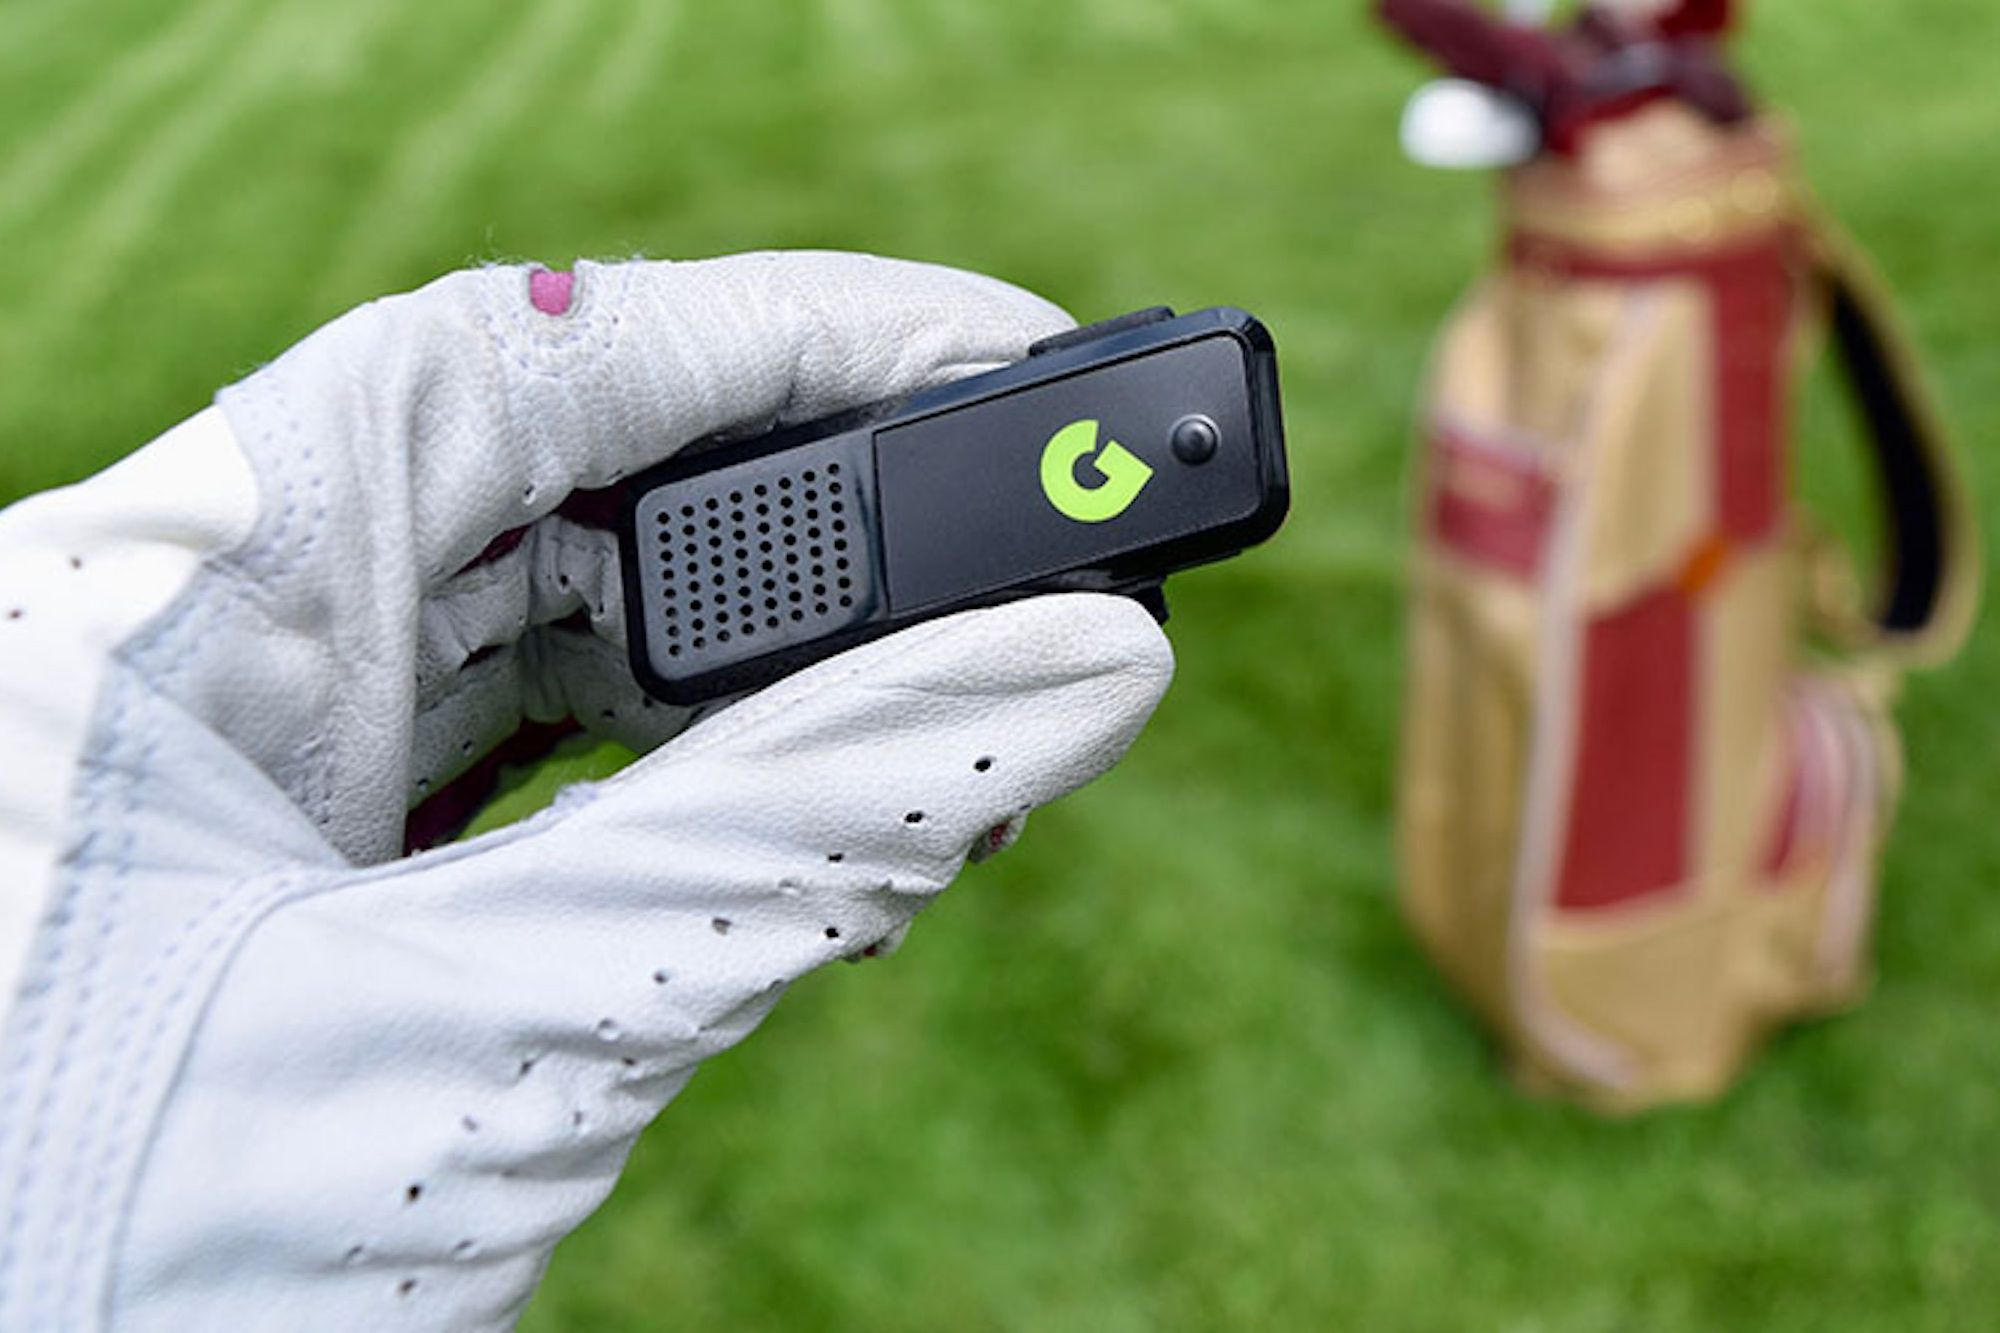 Take a Couple Strokes Off Your Golf Game With This Rangefinder